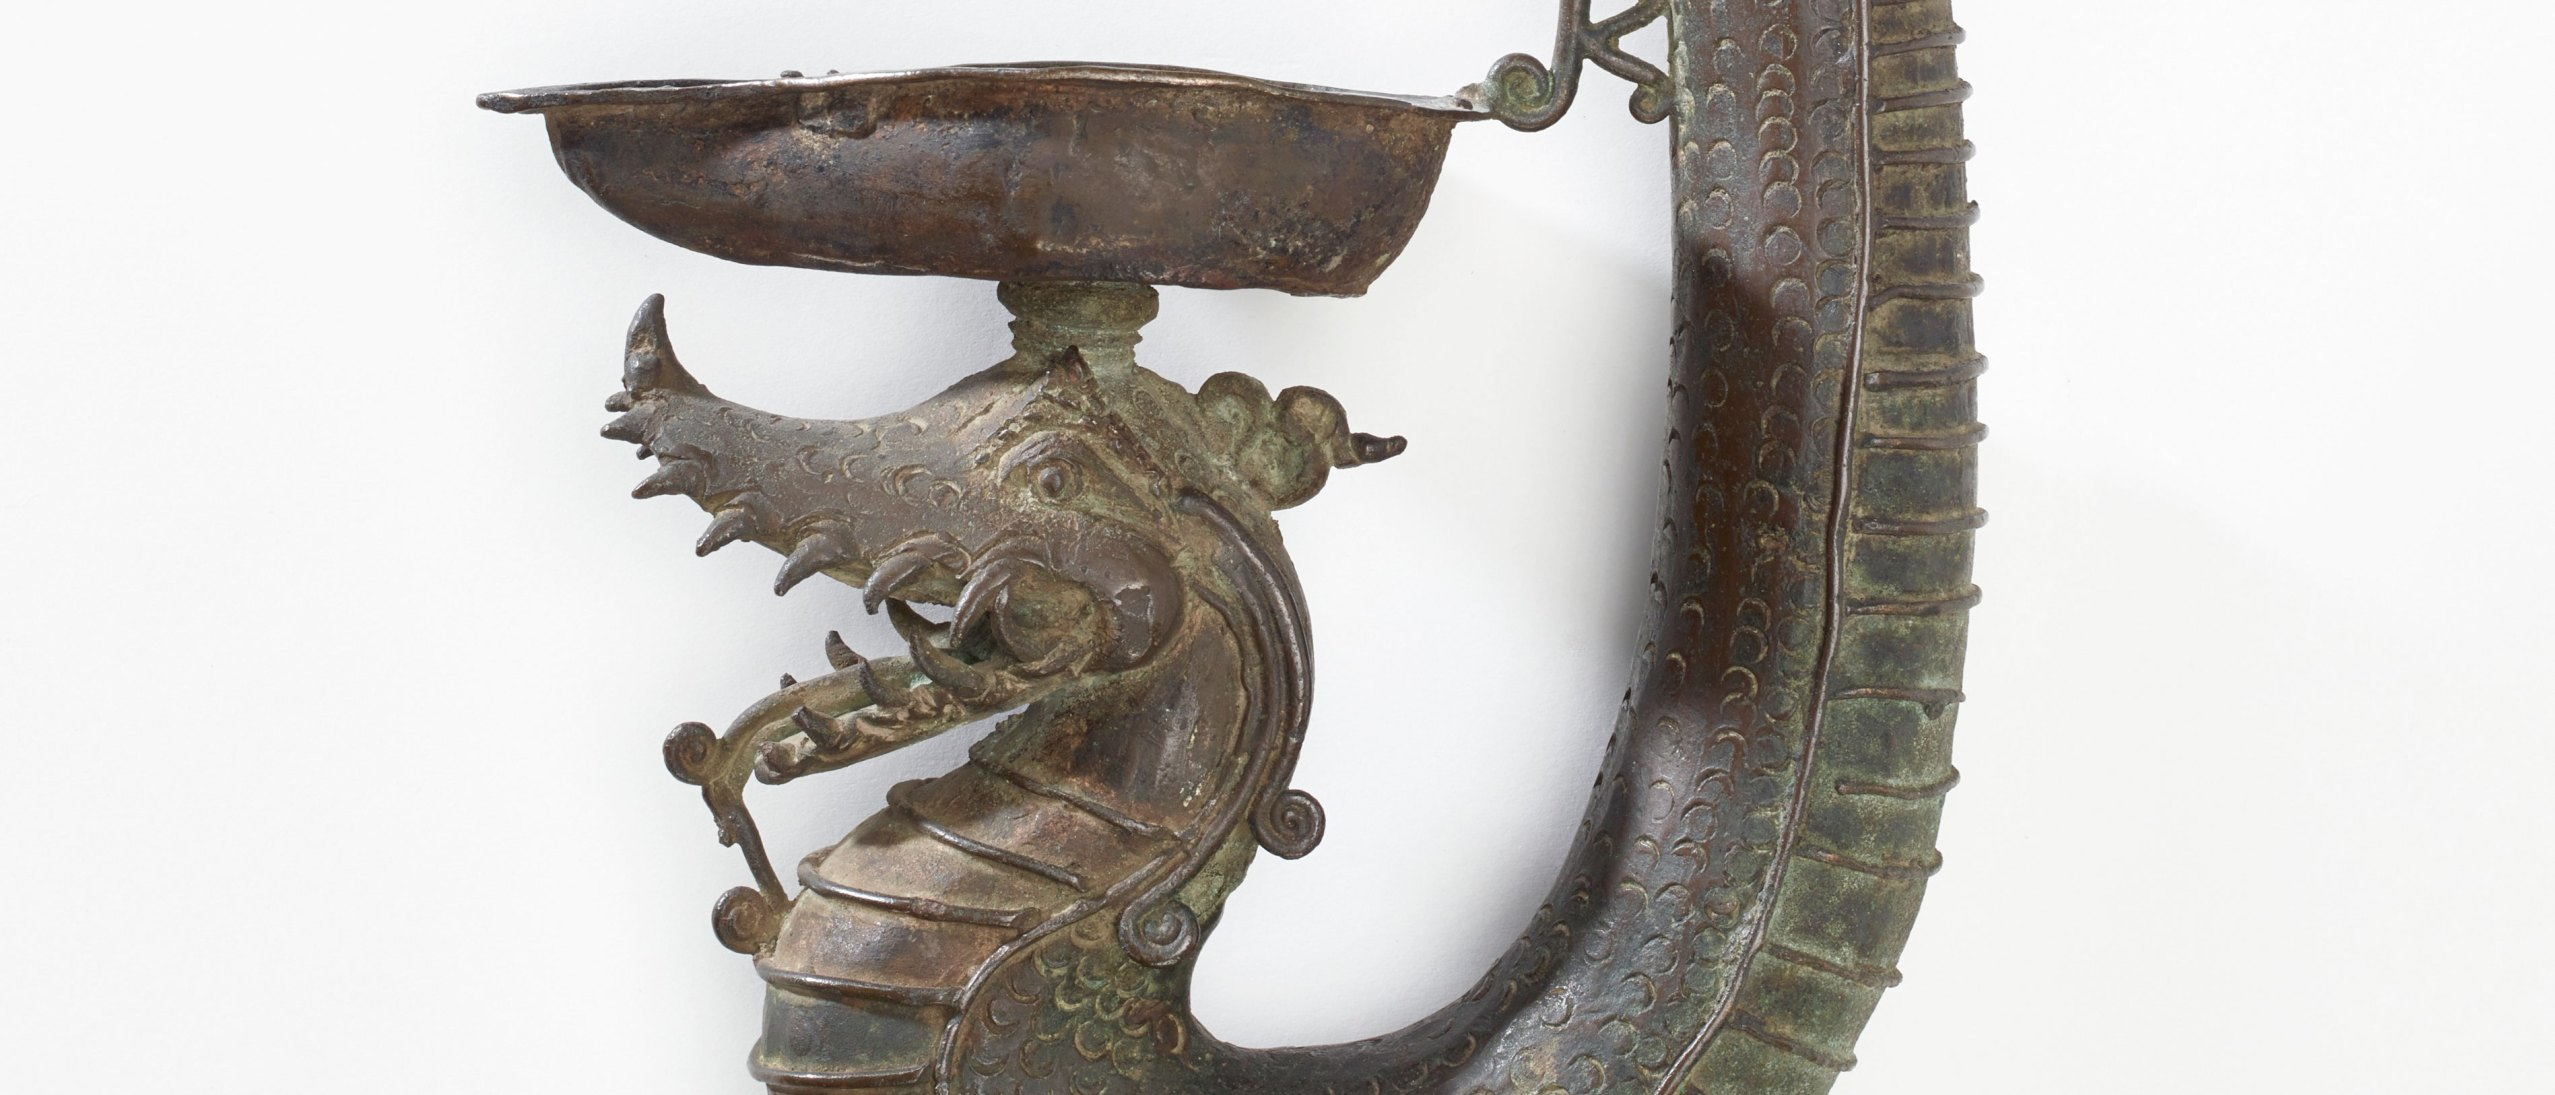 detail from Naga Oil Lamp